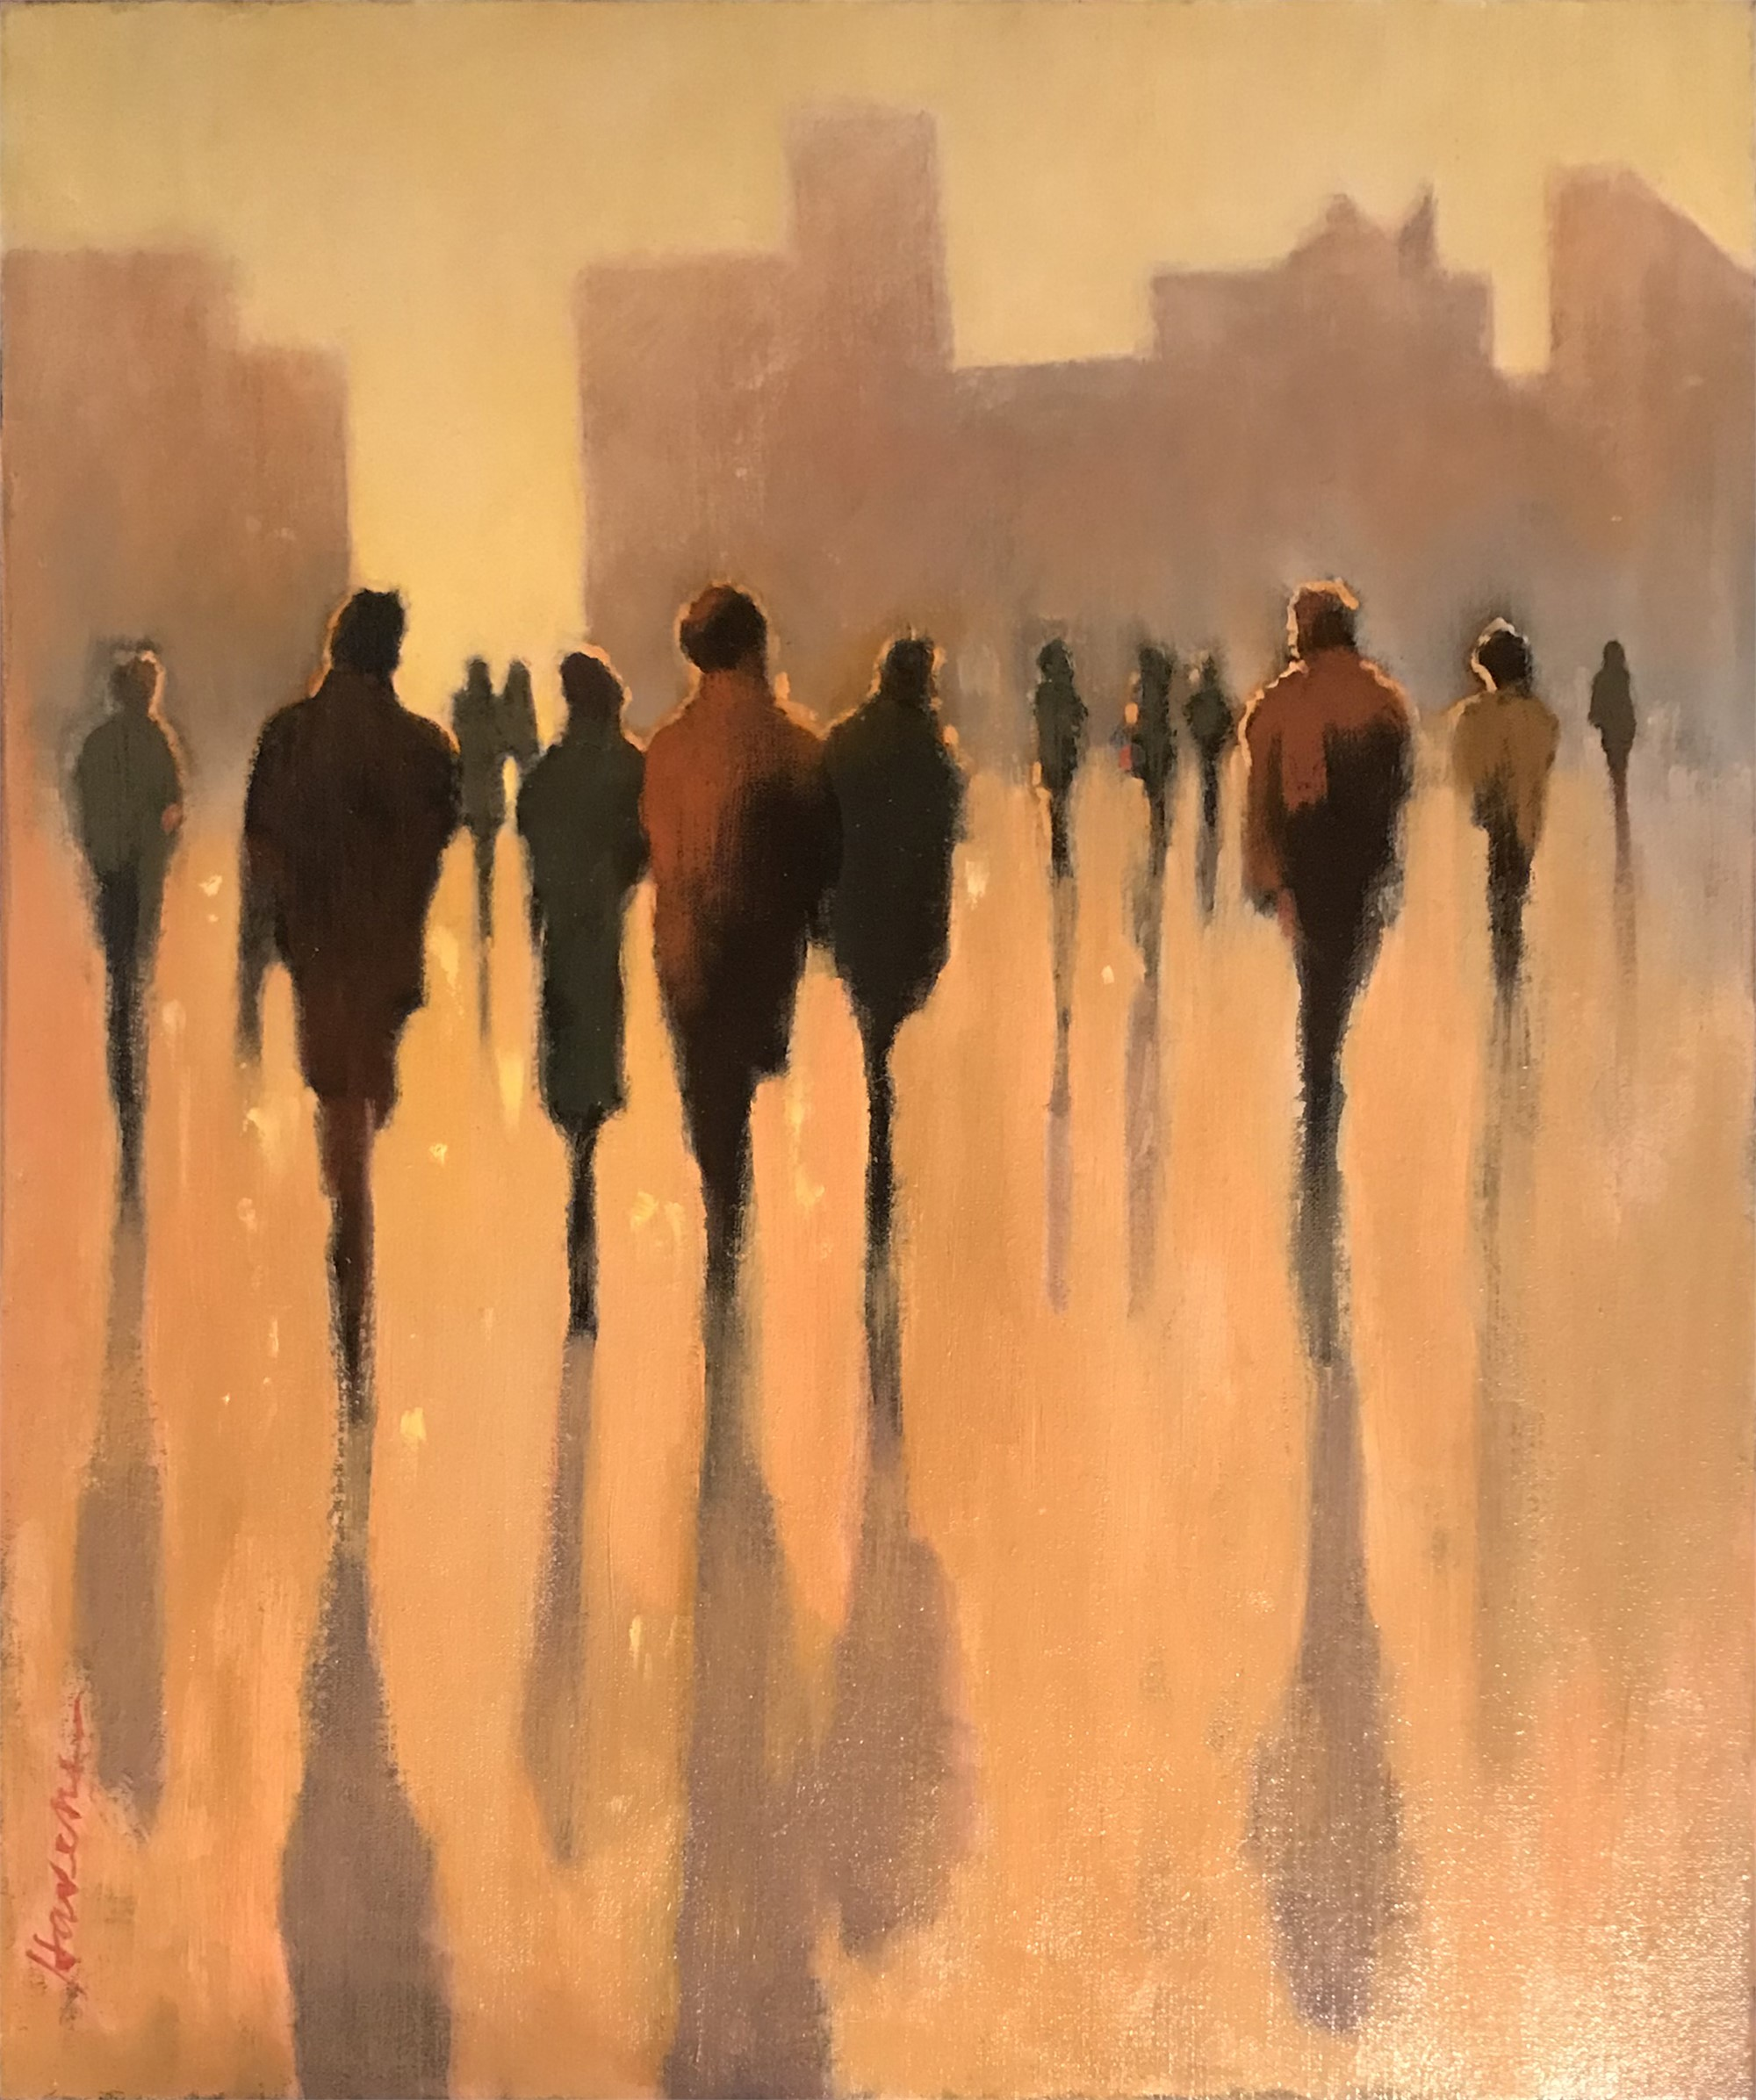 Morning in the City by Betsy Havens